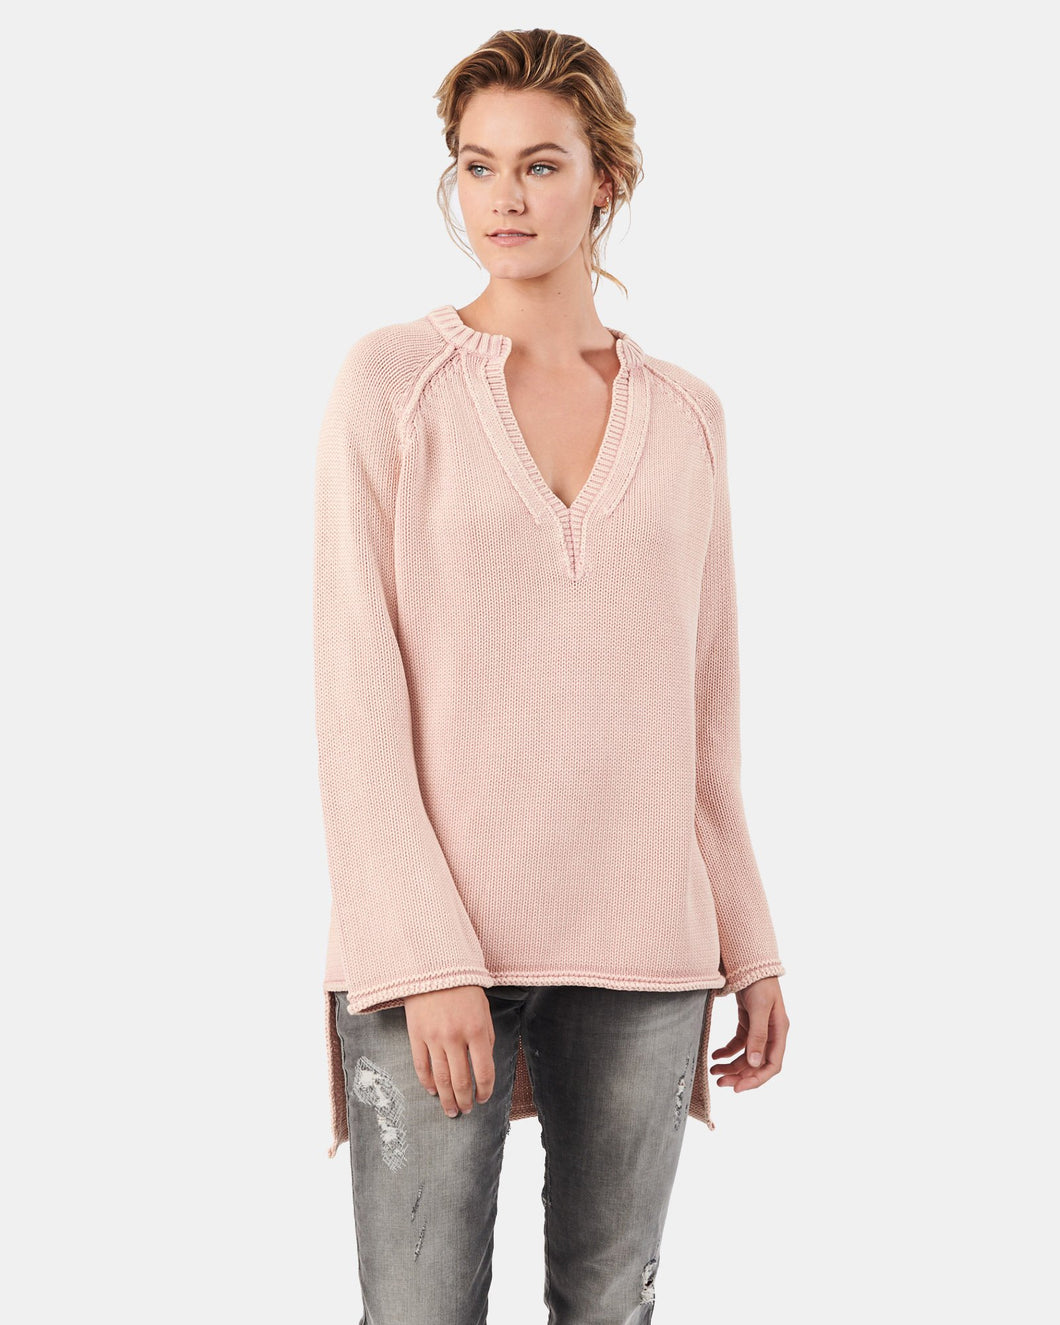 Kitty Open V-Neck Cotton Knit